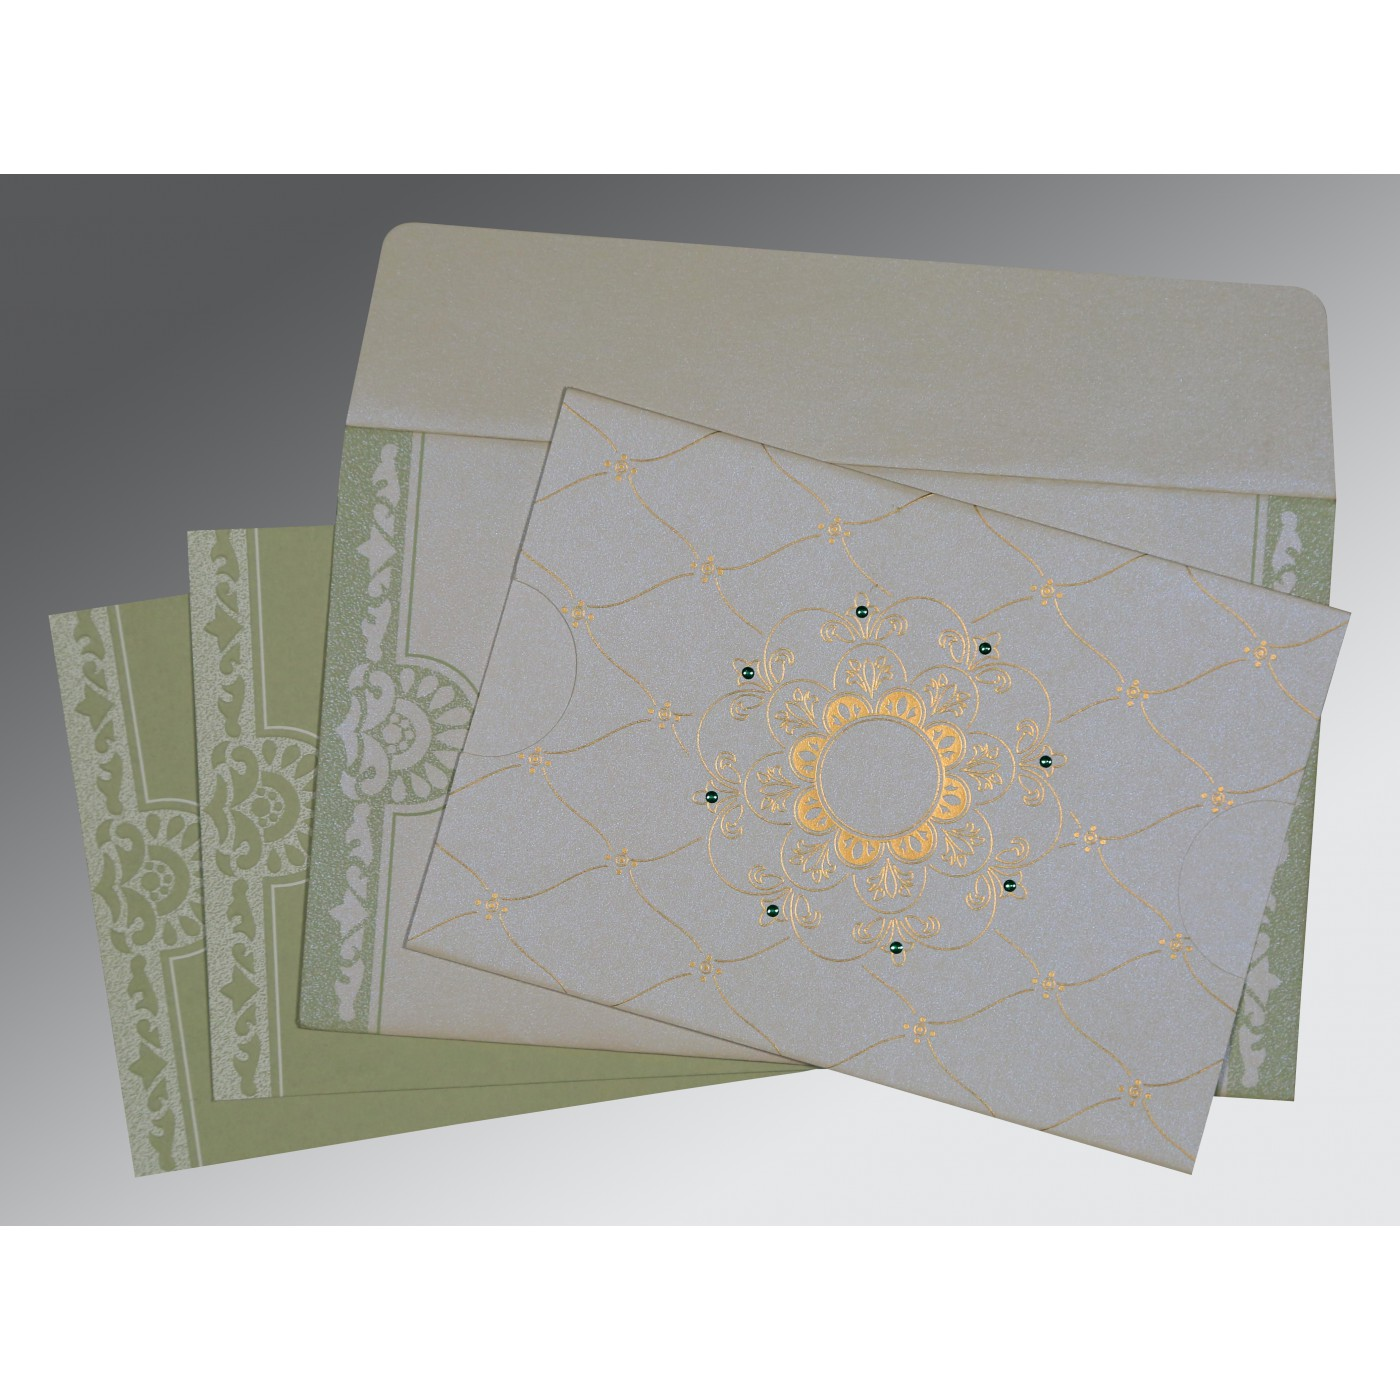 OFF-WHITE SHIMMERY FLORAL THEMED - SCREEN PRINTED WEDDING CARD : AI-8227J - A2zWeddingCards